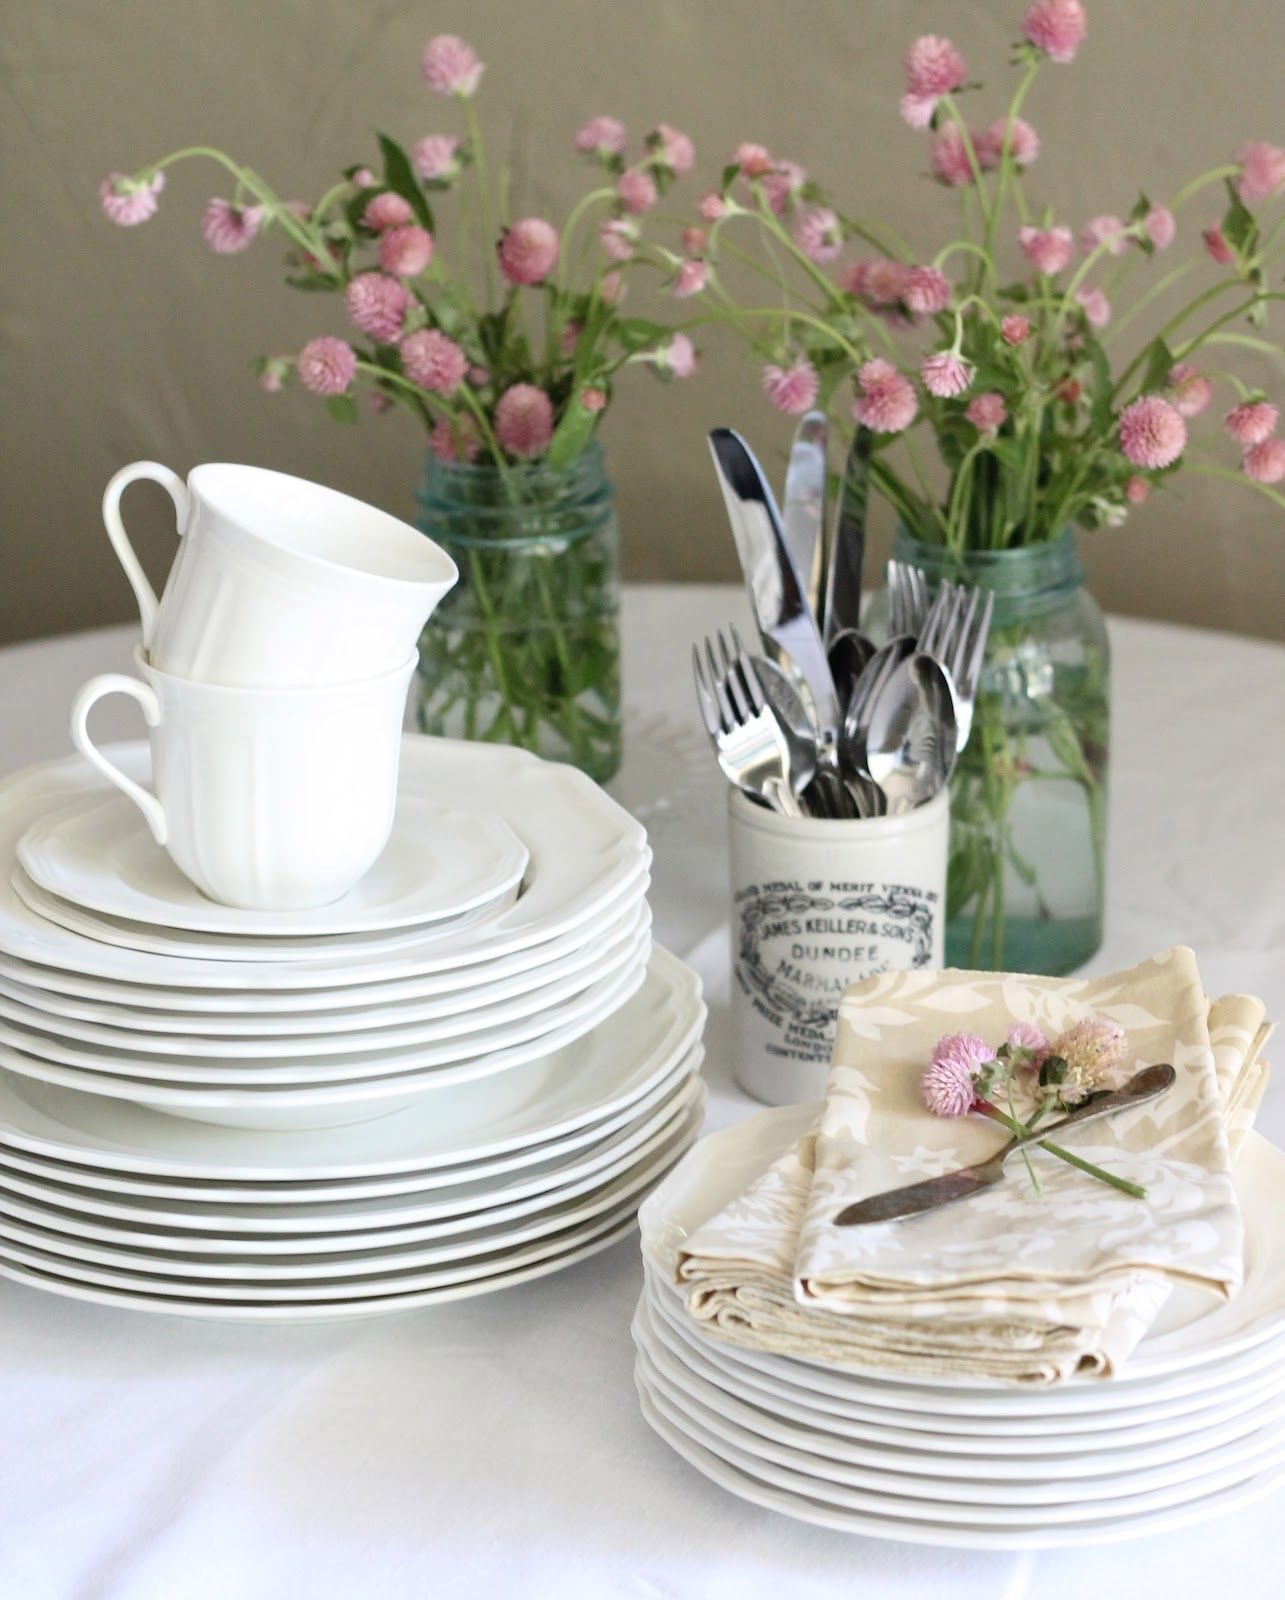 Registry Favorites Our Dishes Mikasa Antique White Dinnerware & The perfect white dishes: Antique White by Mikasa | My Home + Blog ...